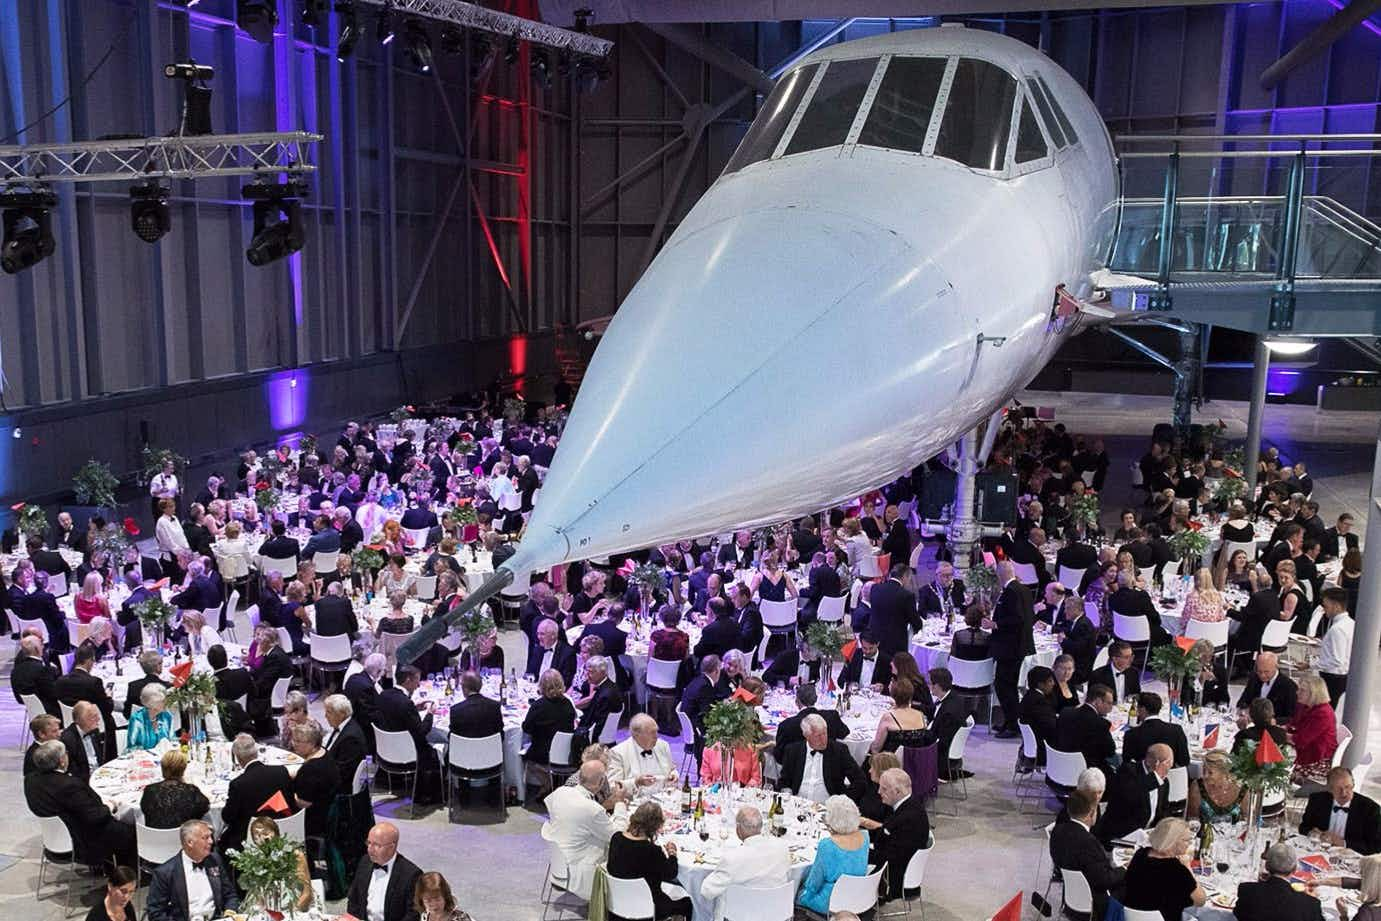 Dine underneath the last Concorde at this new aviation museum